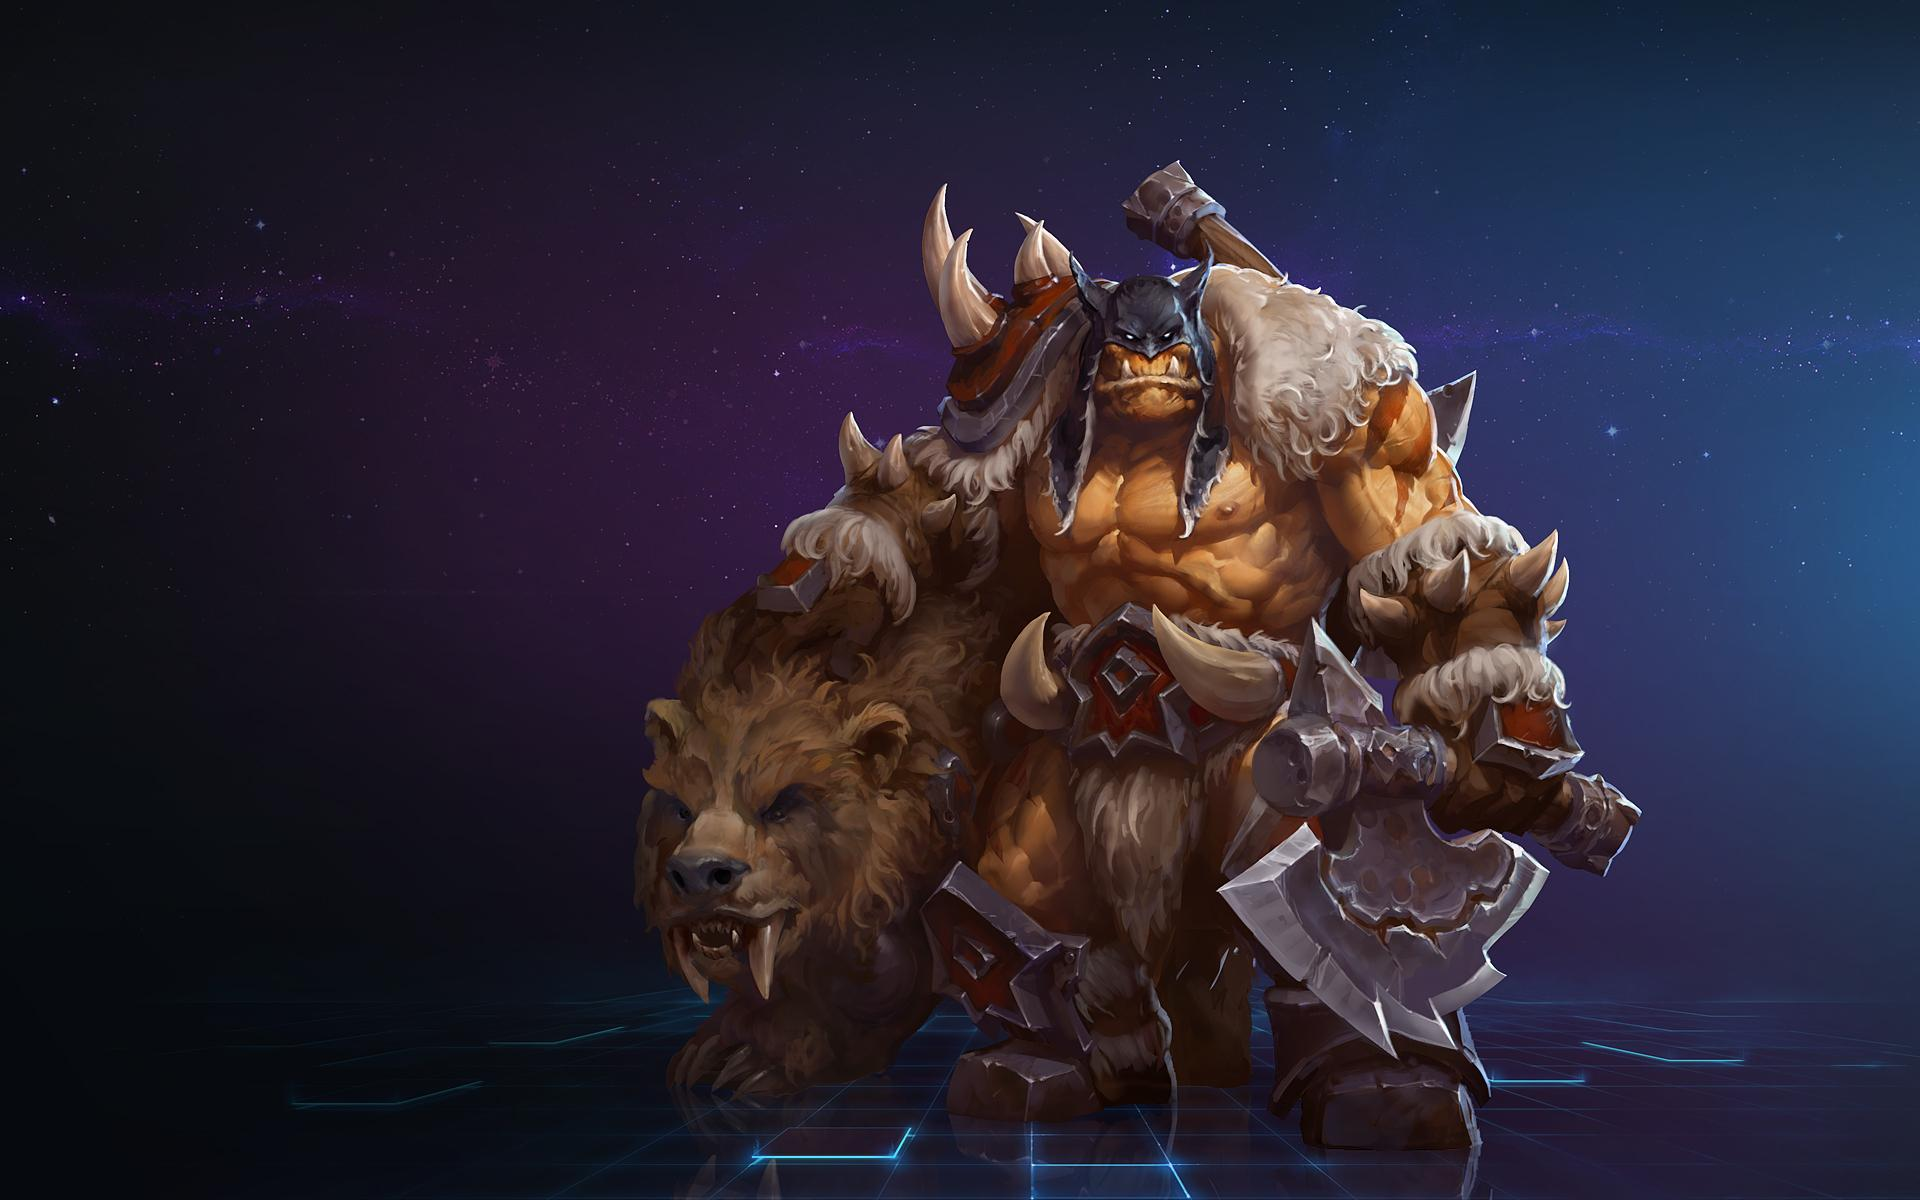 Heroes of the Storm Rexxar